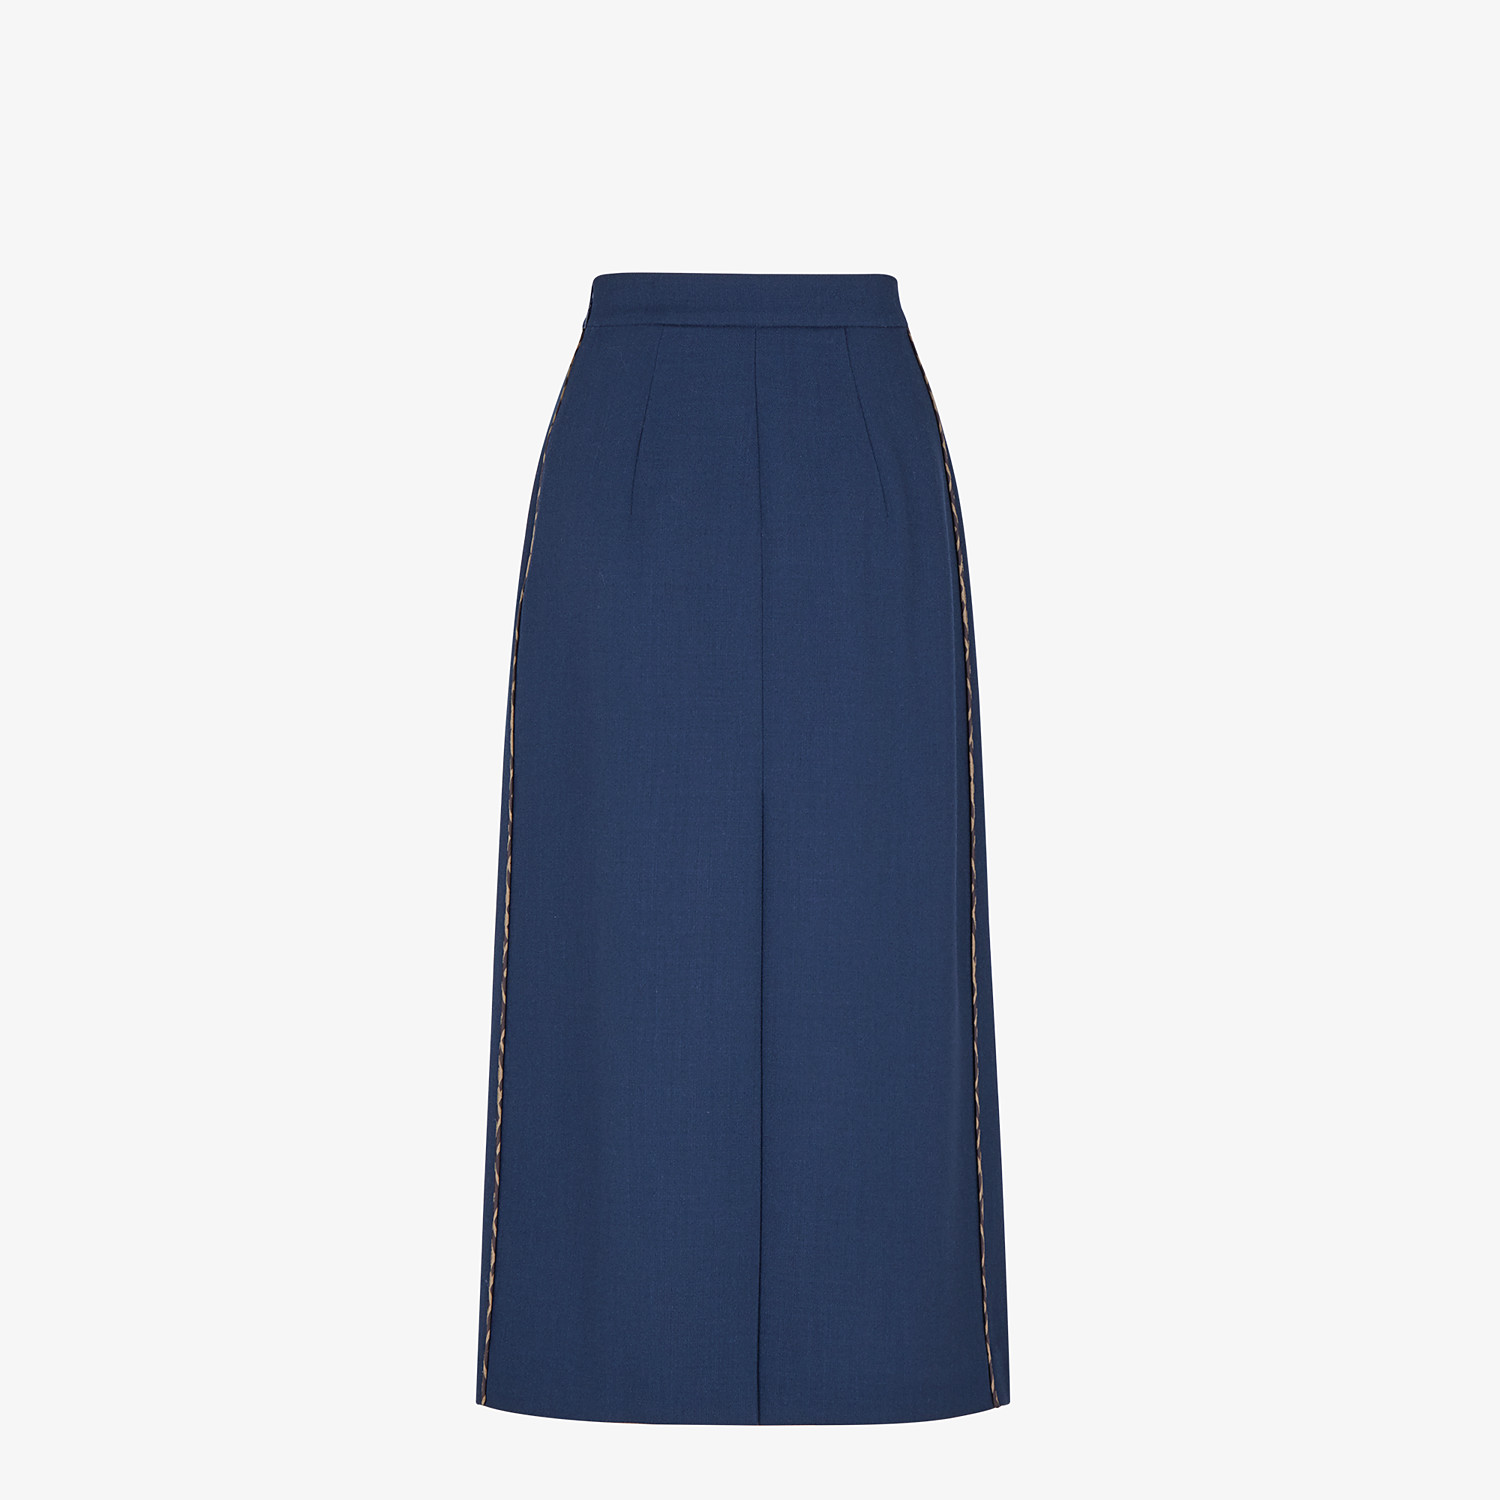 FENDI SKIRT - Blue wool skirt - view 2 detail